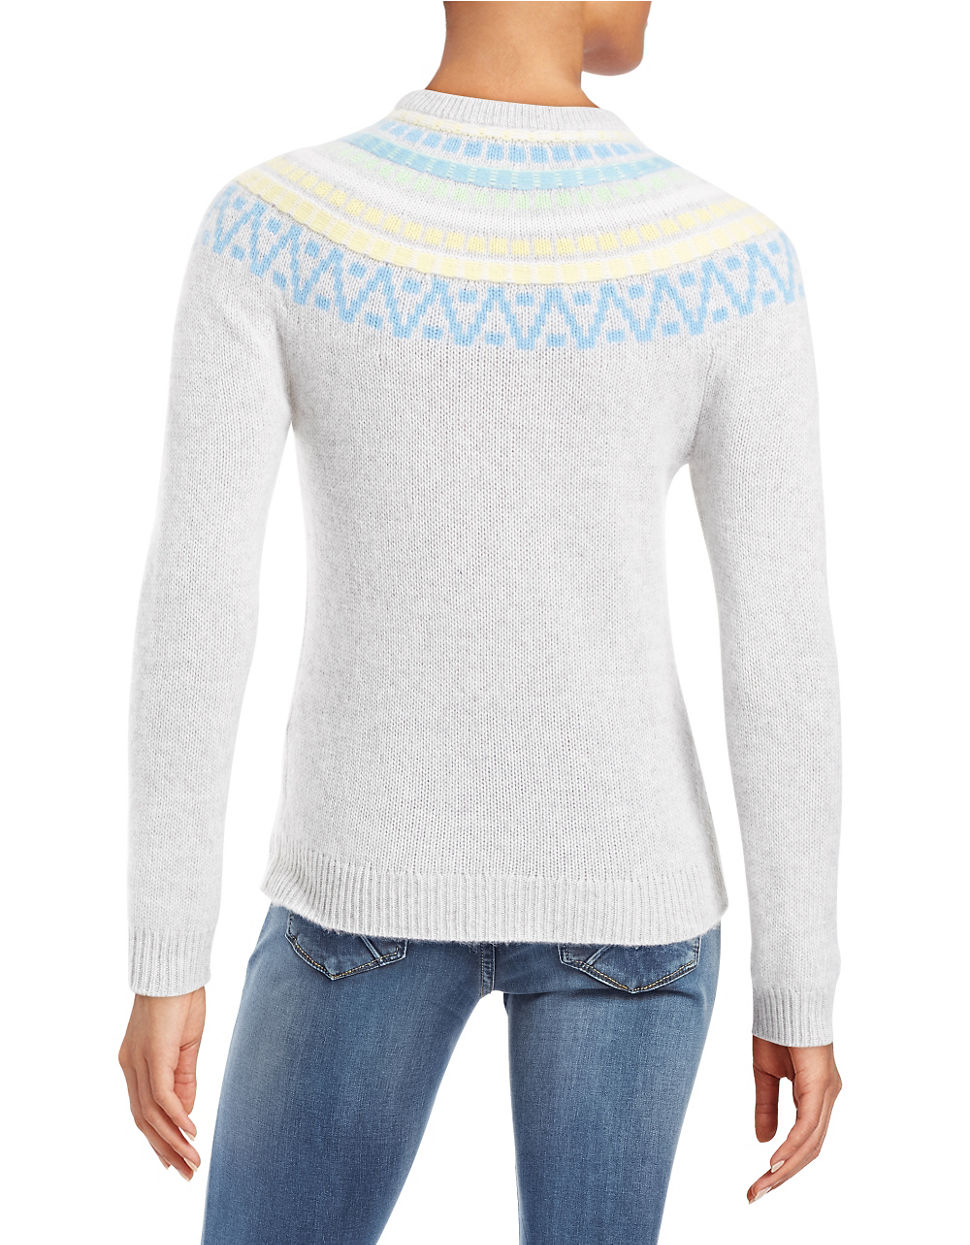 Lord & taylor Patterned Cashmere Sweater in Blue | Lyst